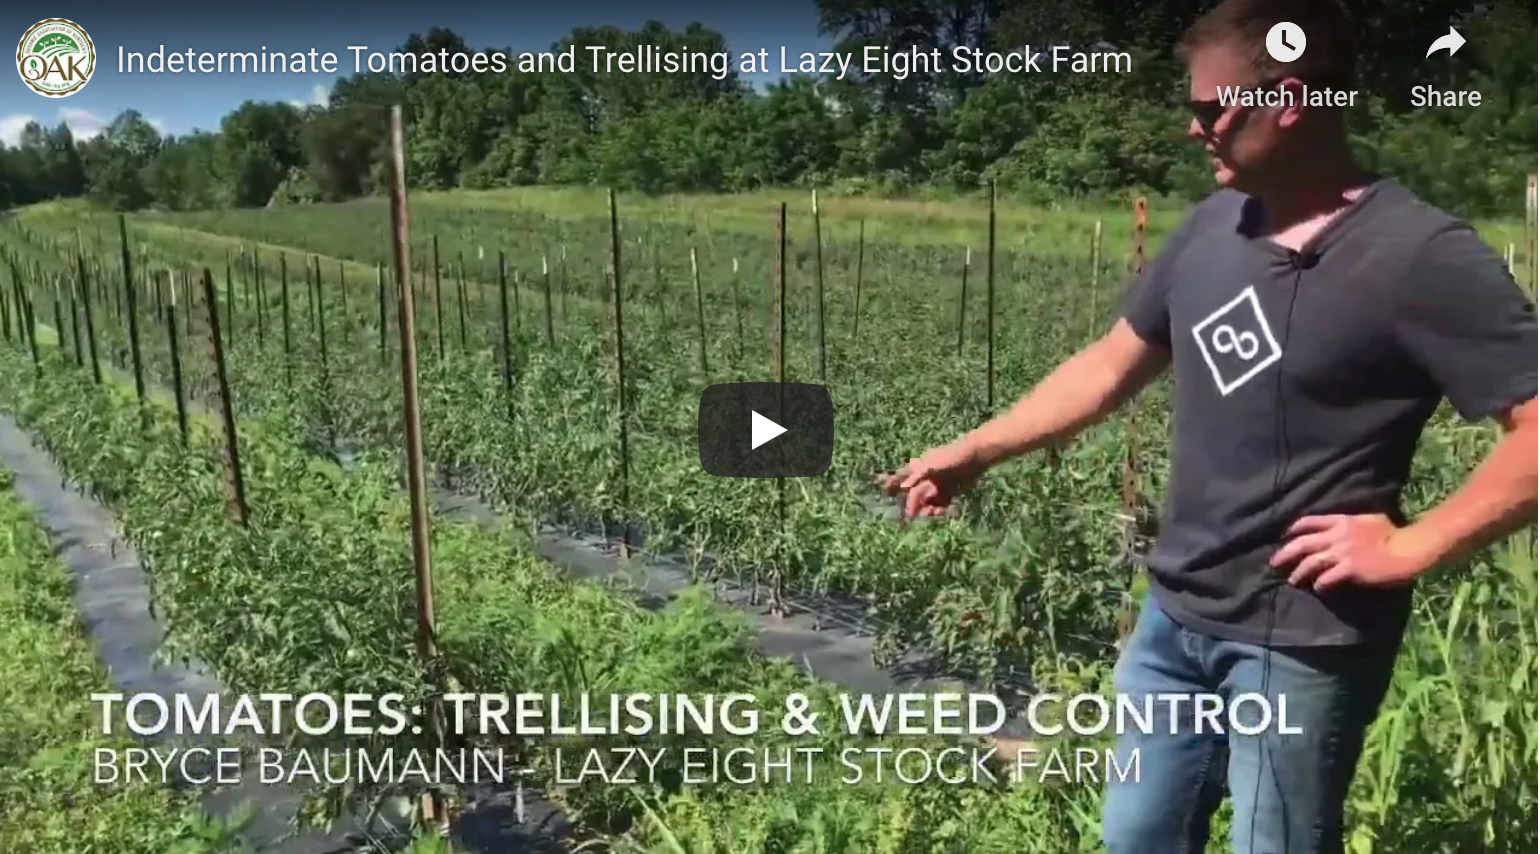 Trellising tomatoes at Lazy Eight Stock Farm